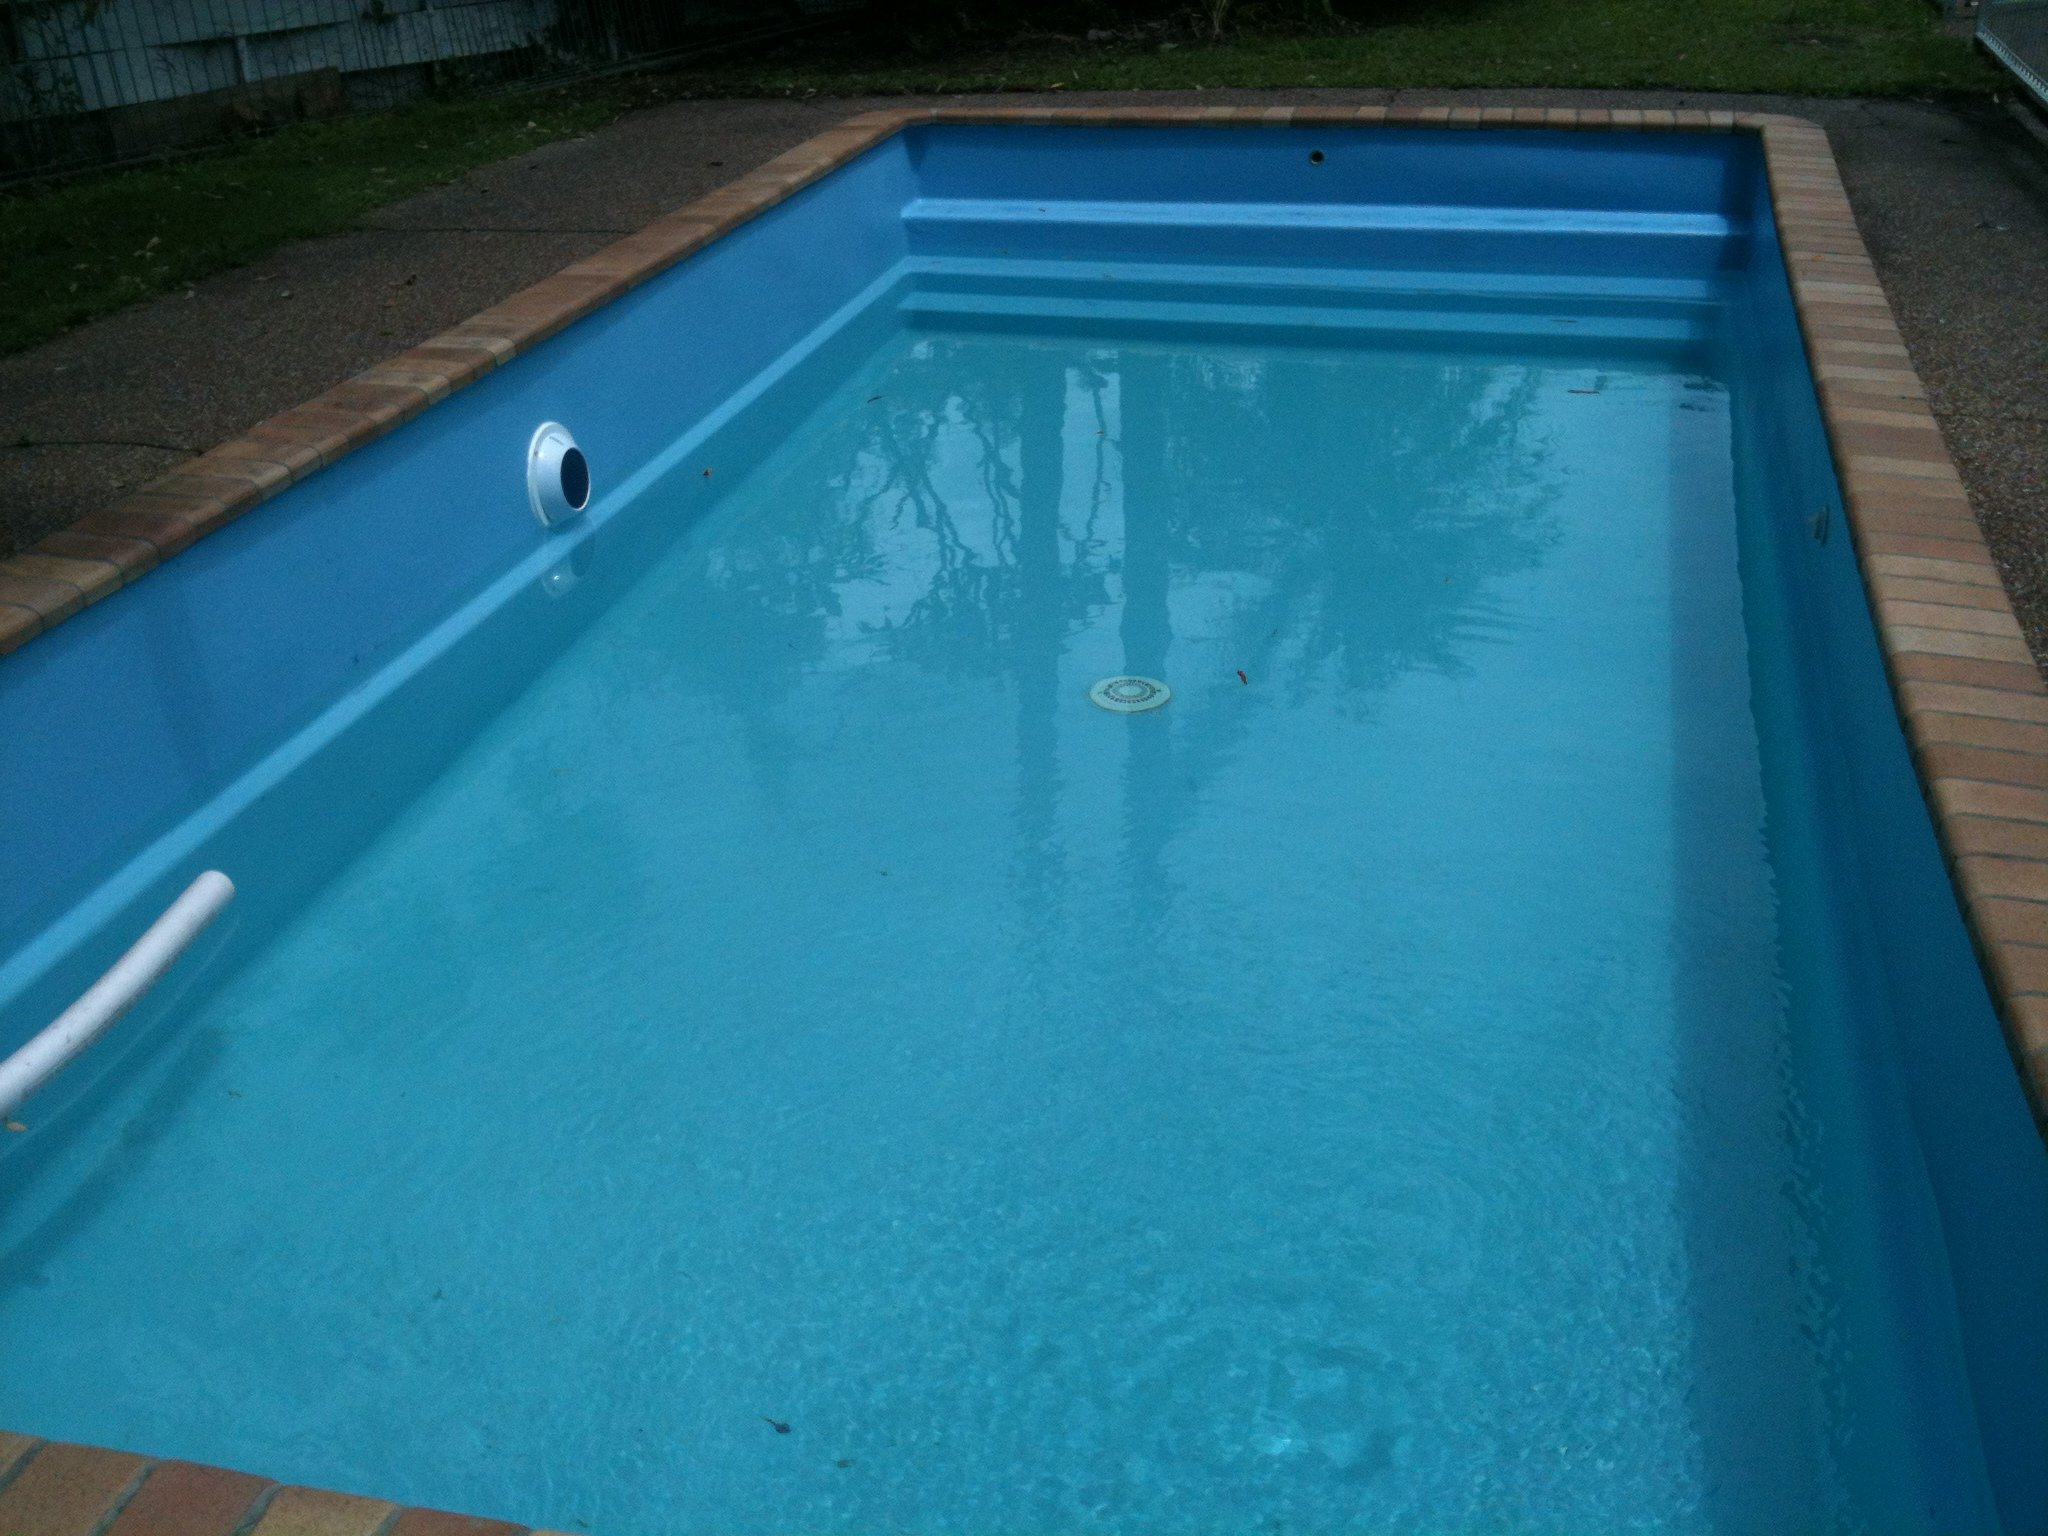 View of the pool after the resurfacing work